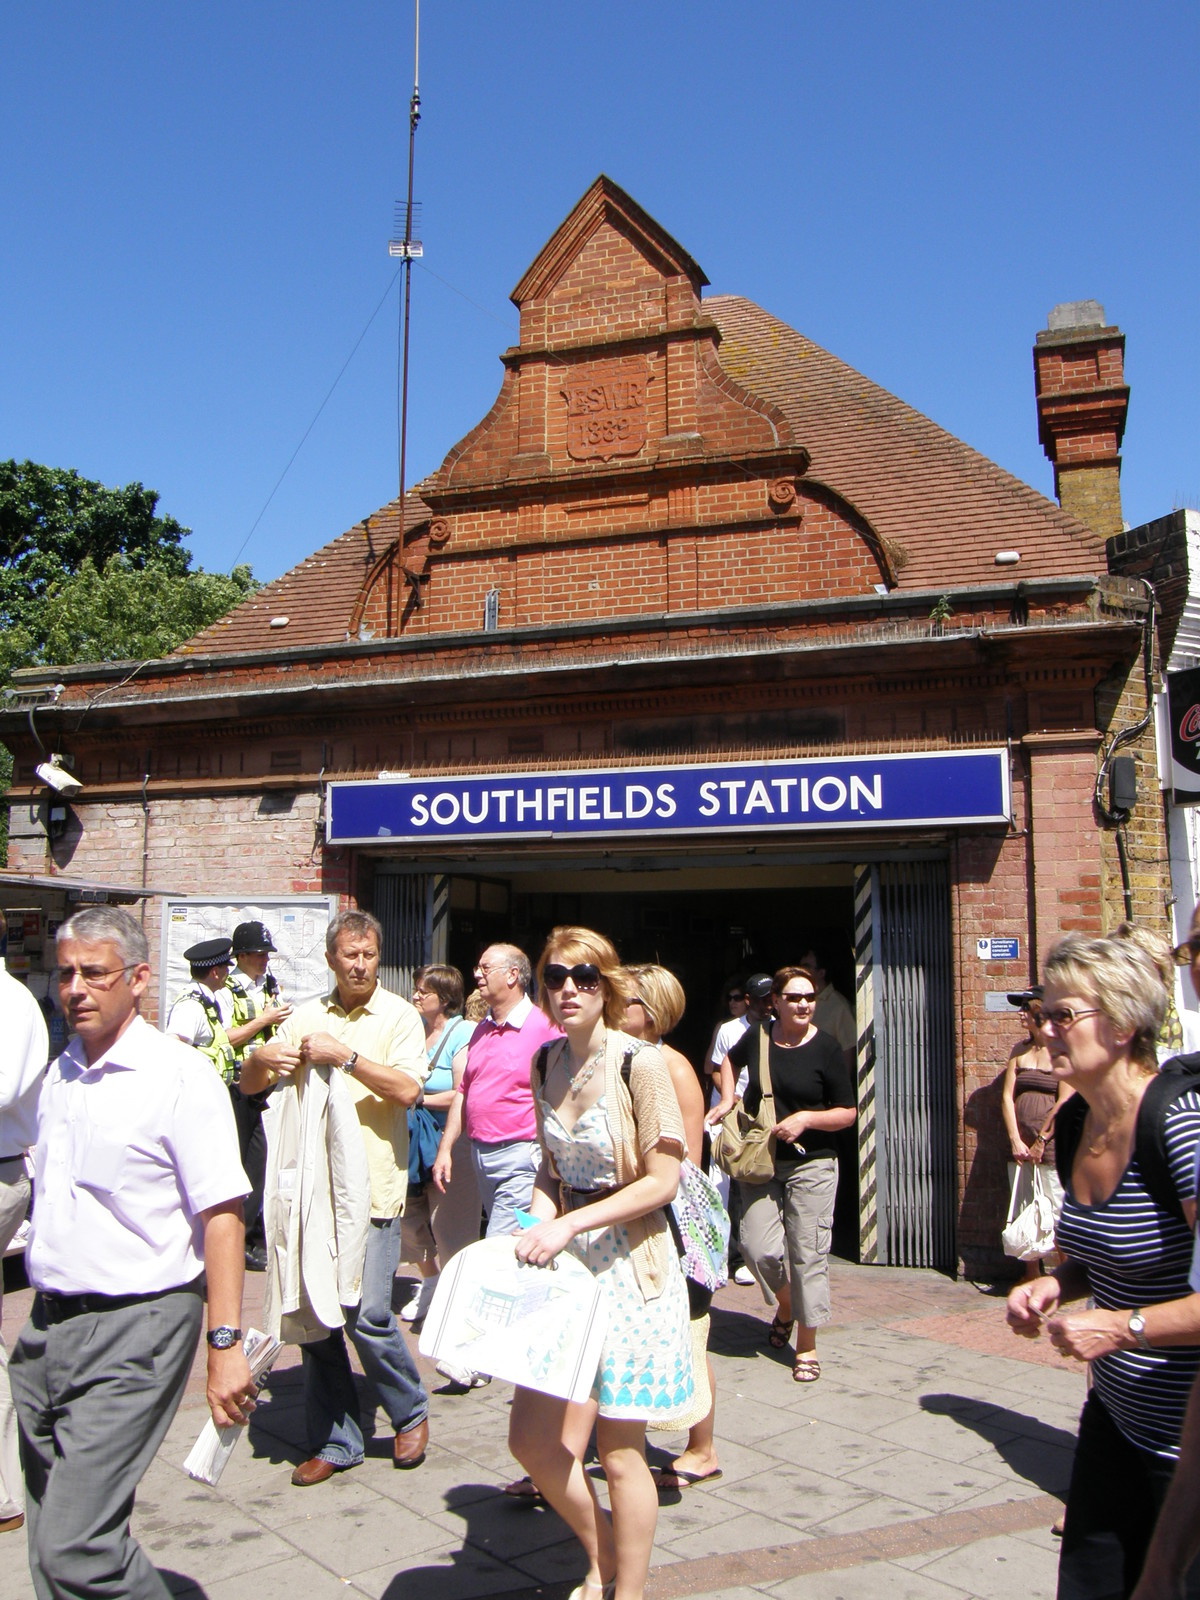 Crowds pouring out of Southfields station